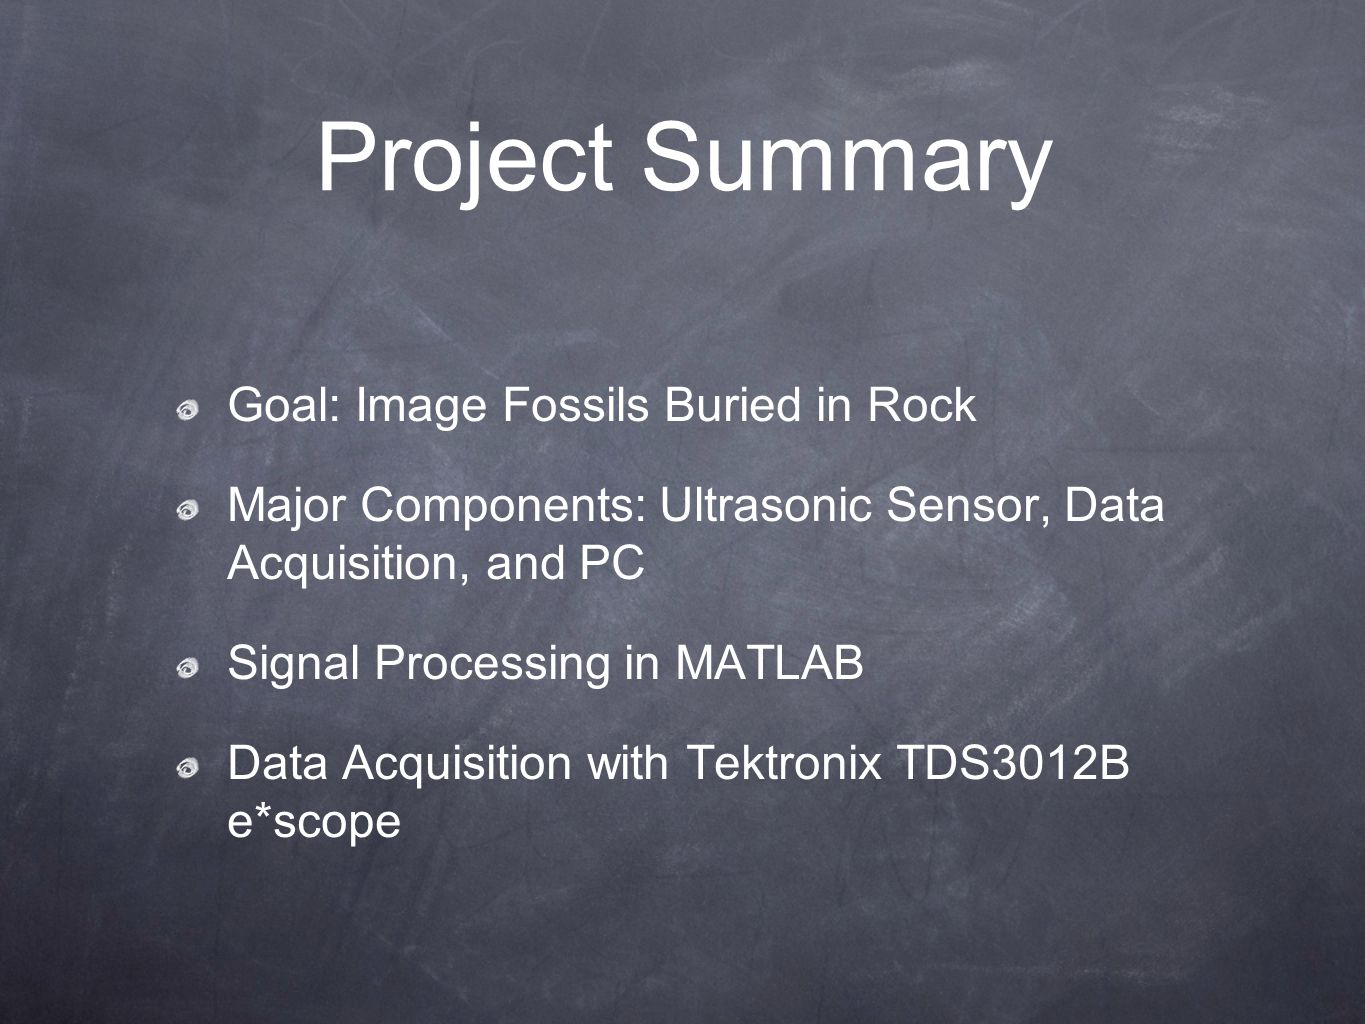 Project Summary Goal: Image Fossils Buried in Rock Major Components: Ultrasonic Sensor, Data Acquisition, and PC Signal Processing in MATLAB Data Acquisition with Tektronix TDS3012B e*scope